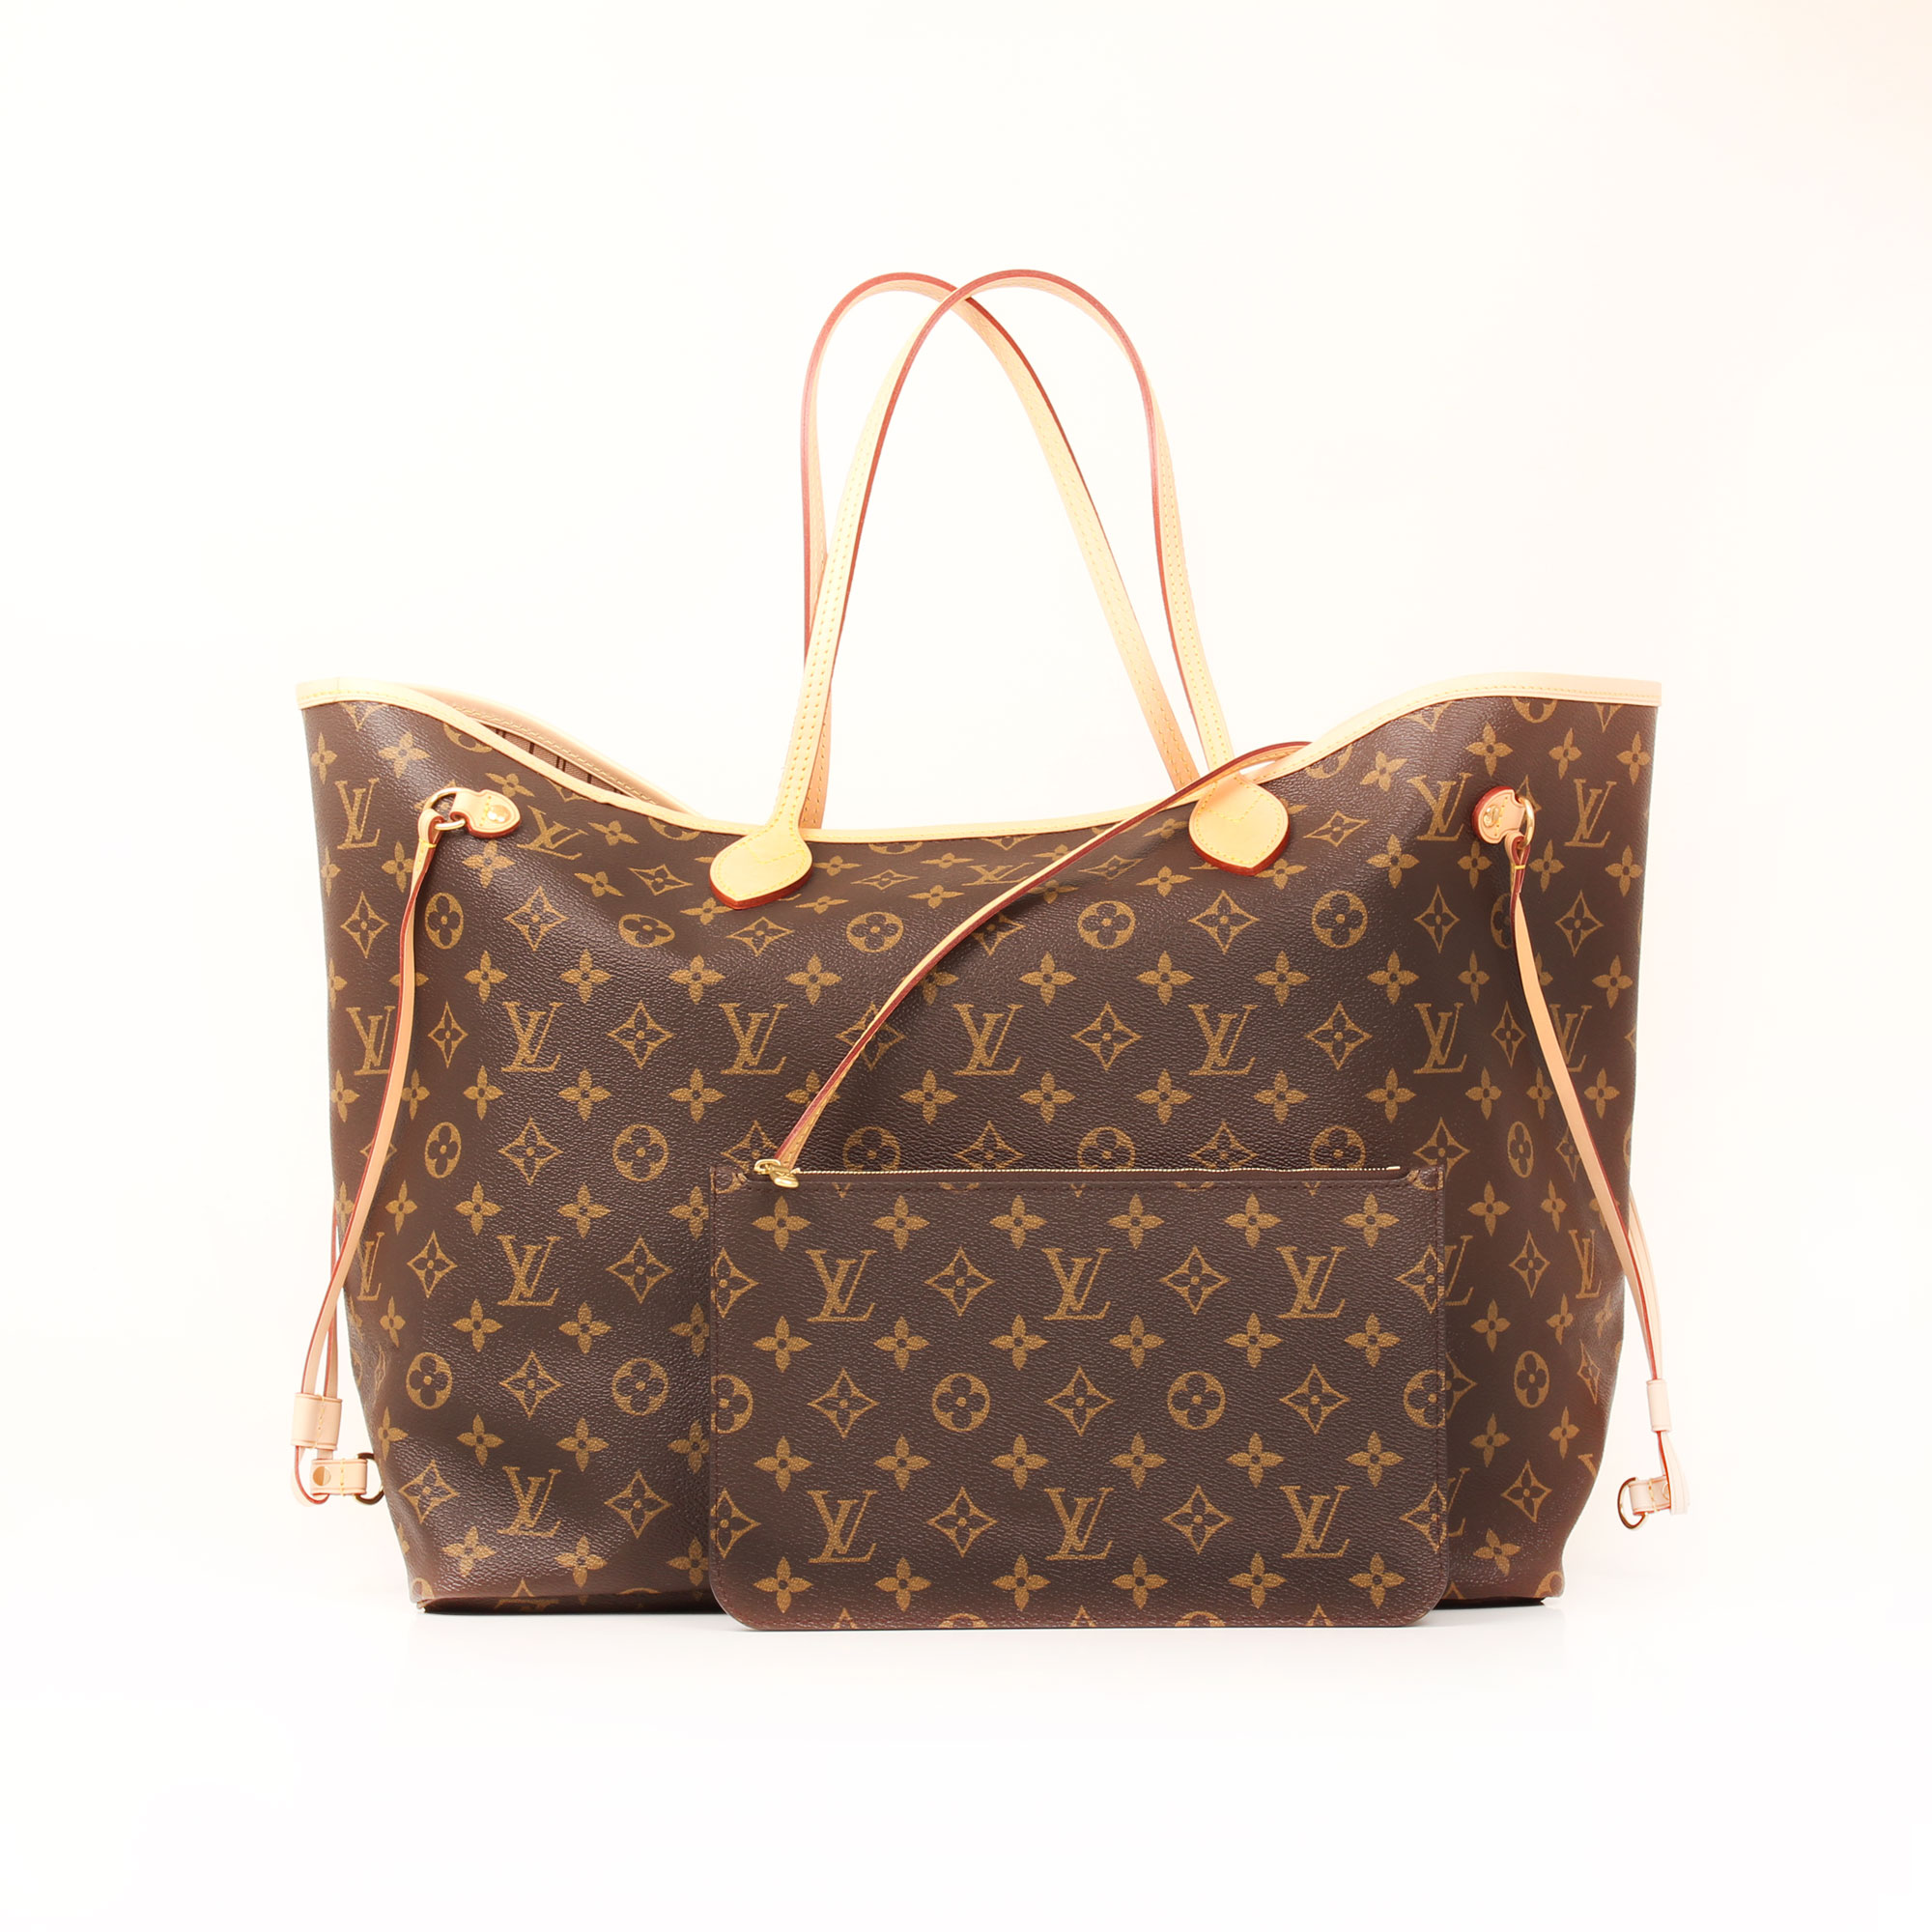 bolso-louis-vuitton-neverfull-gm-monogram-nuevo-frontal-con-pochette